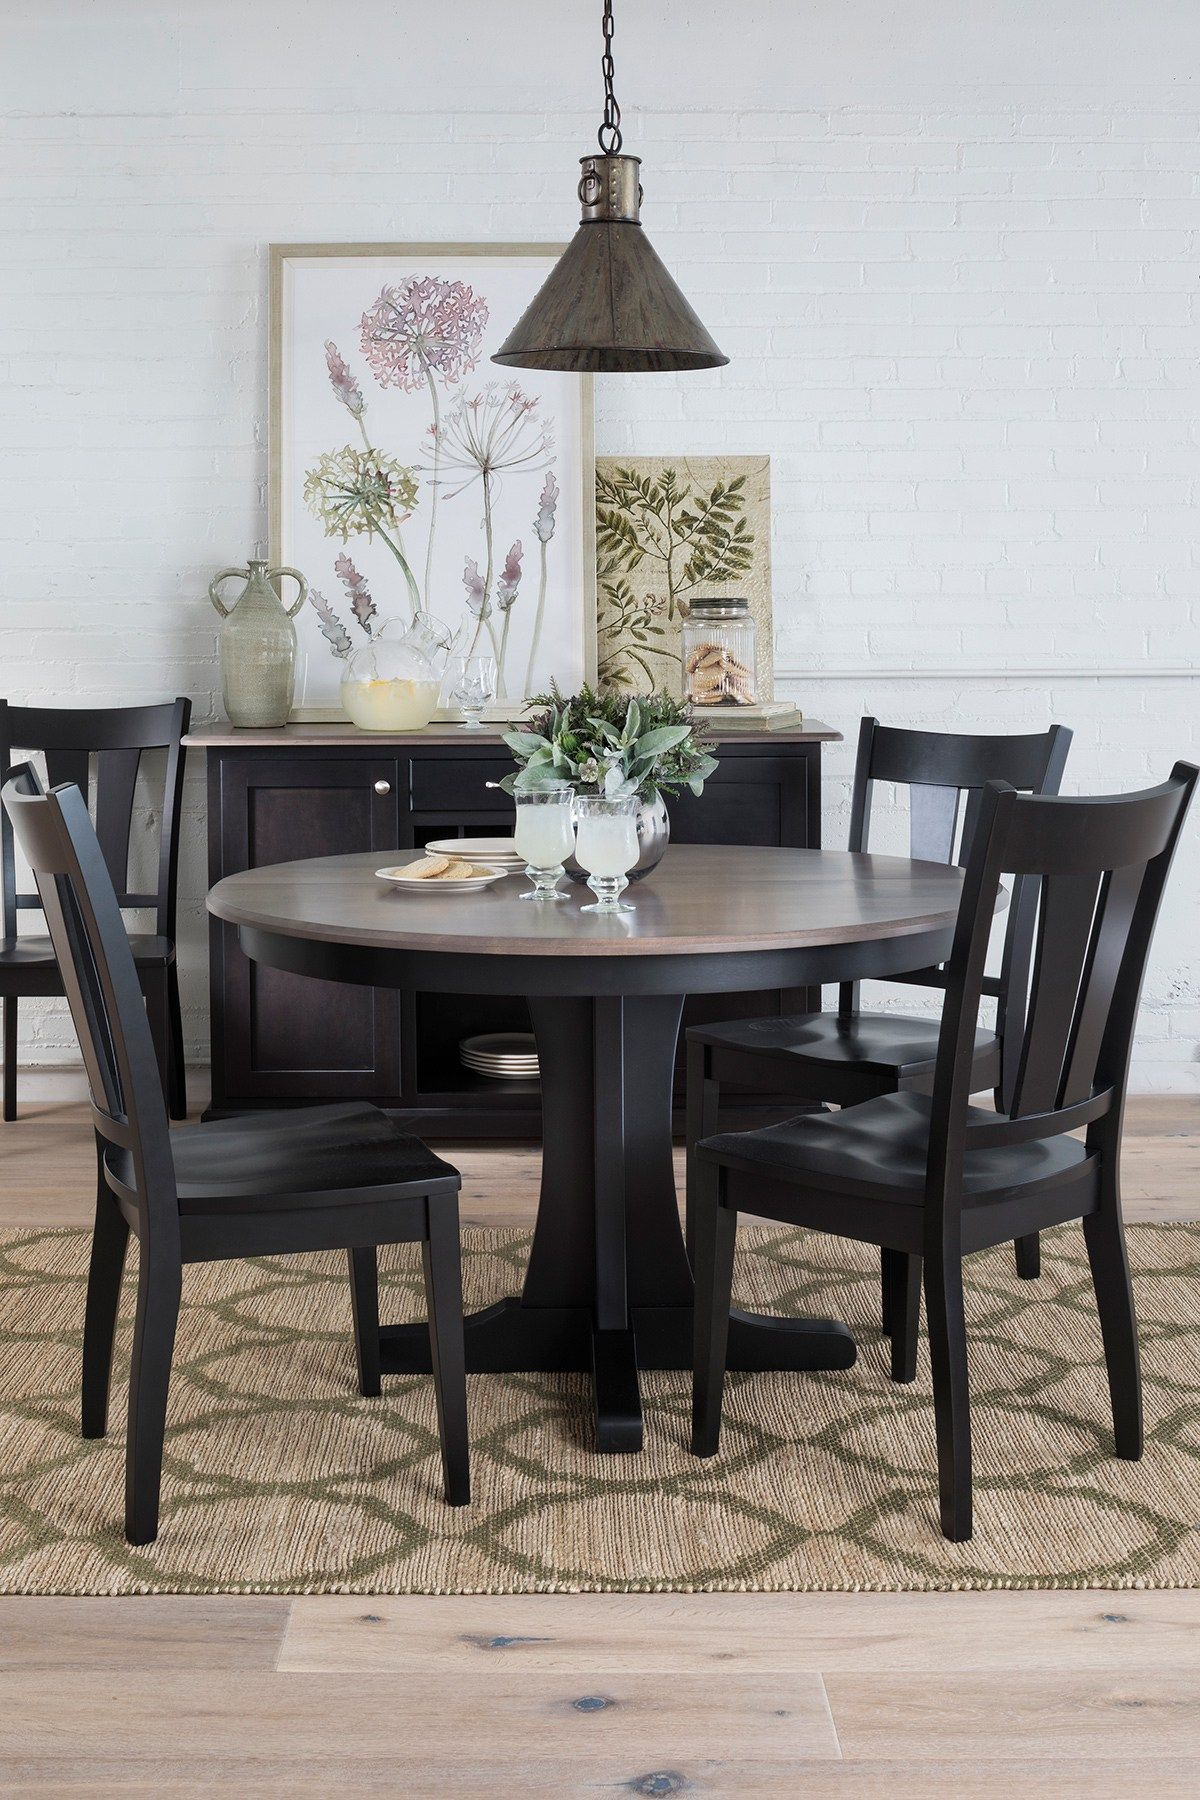 How To Soften A Black And White Space Small Space Dining Black Dining Room Table Black Dining Room Small Spaces